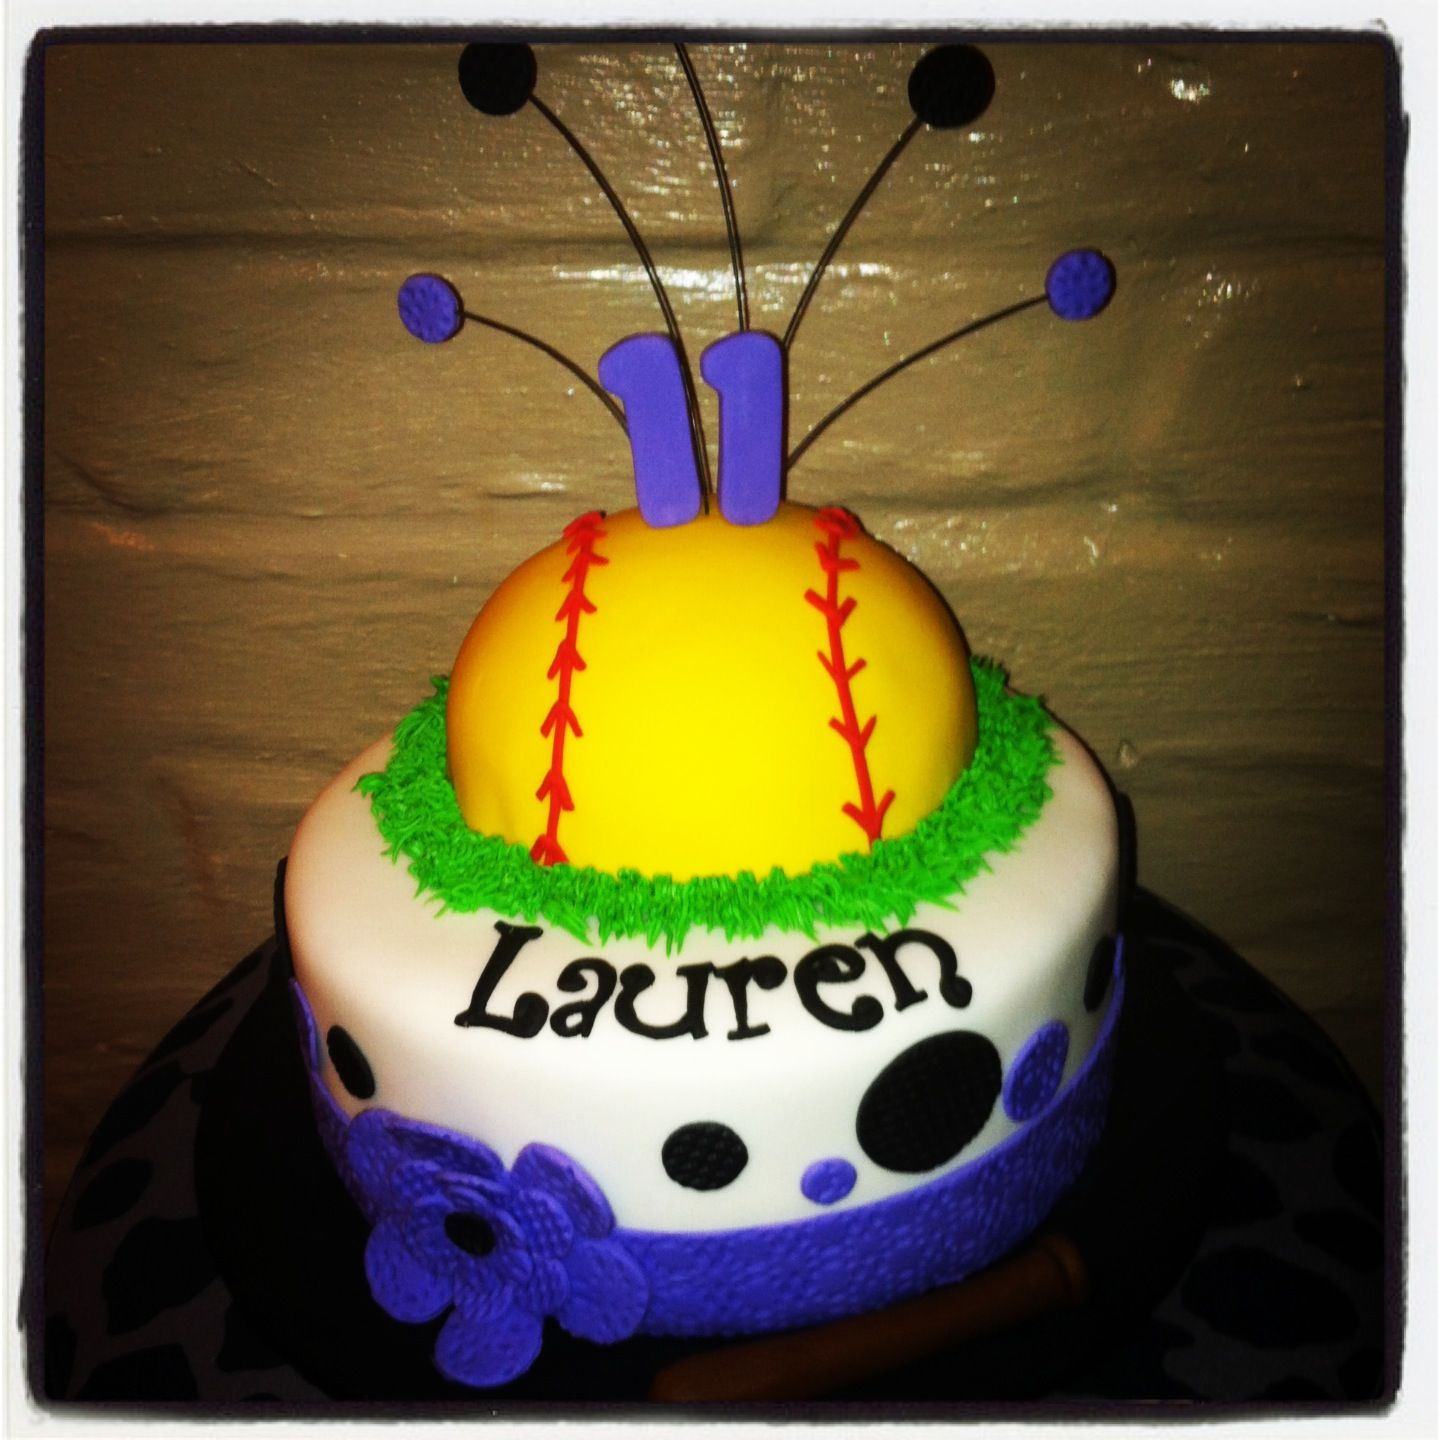 Softball Glove Images Free Images of Softball Cakes